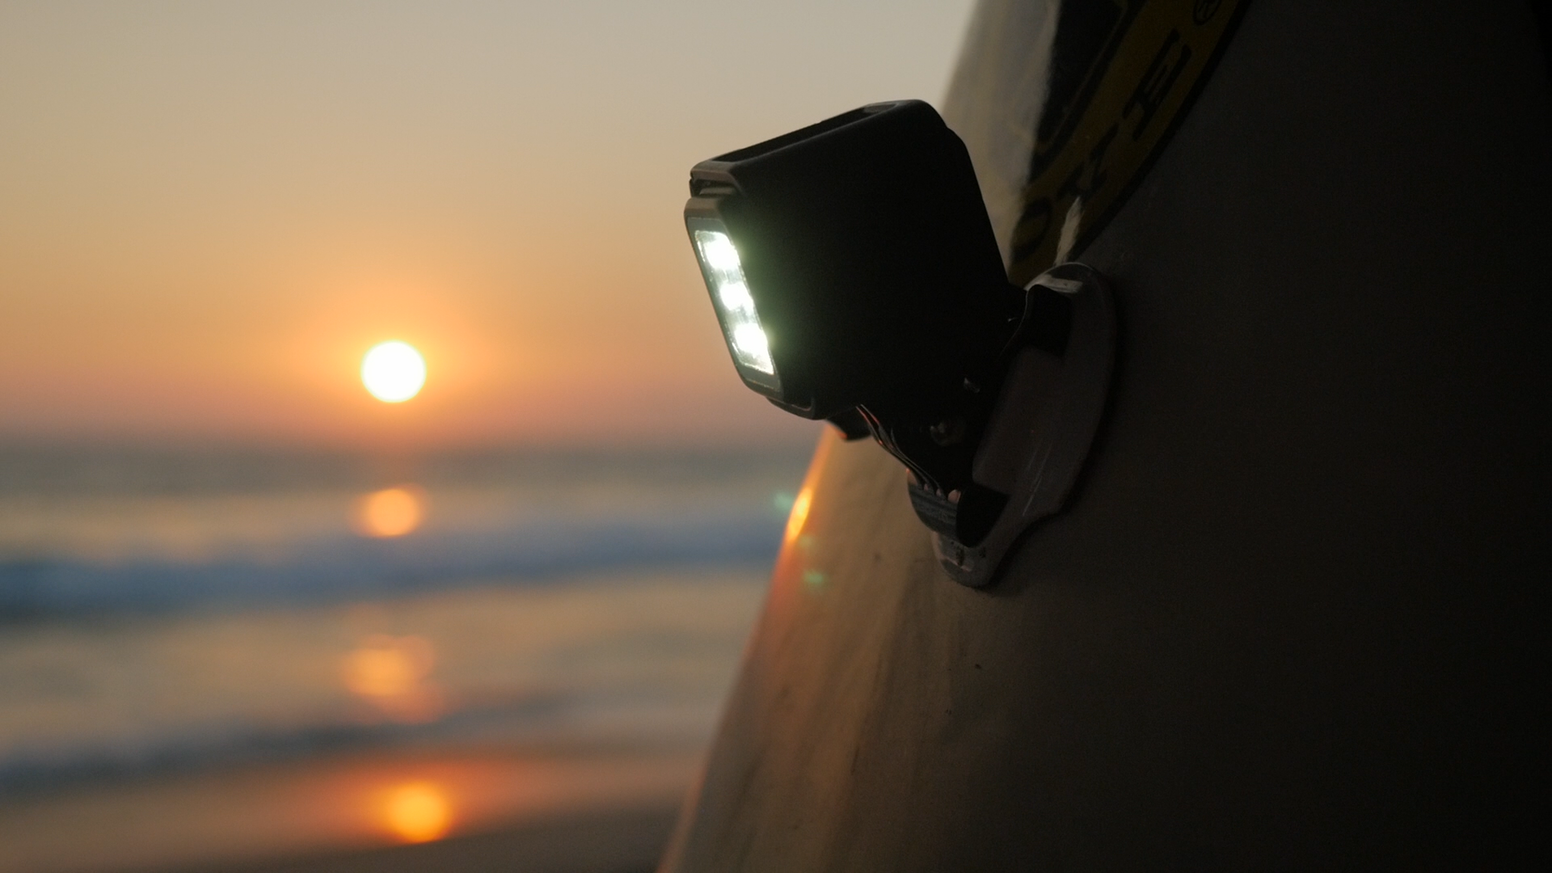 LitraTorch - World's most versatile adventure LED light - for pro photo, video, underwater, bike, camp, drone, safety and fun.